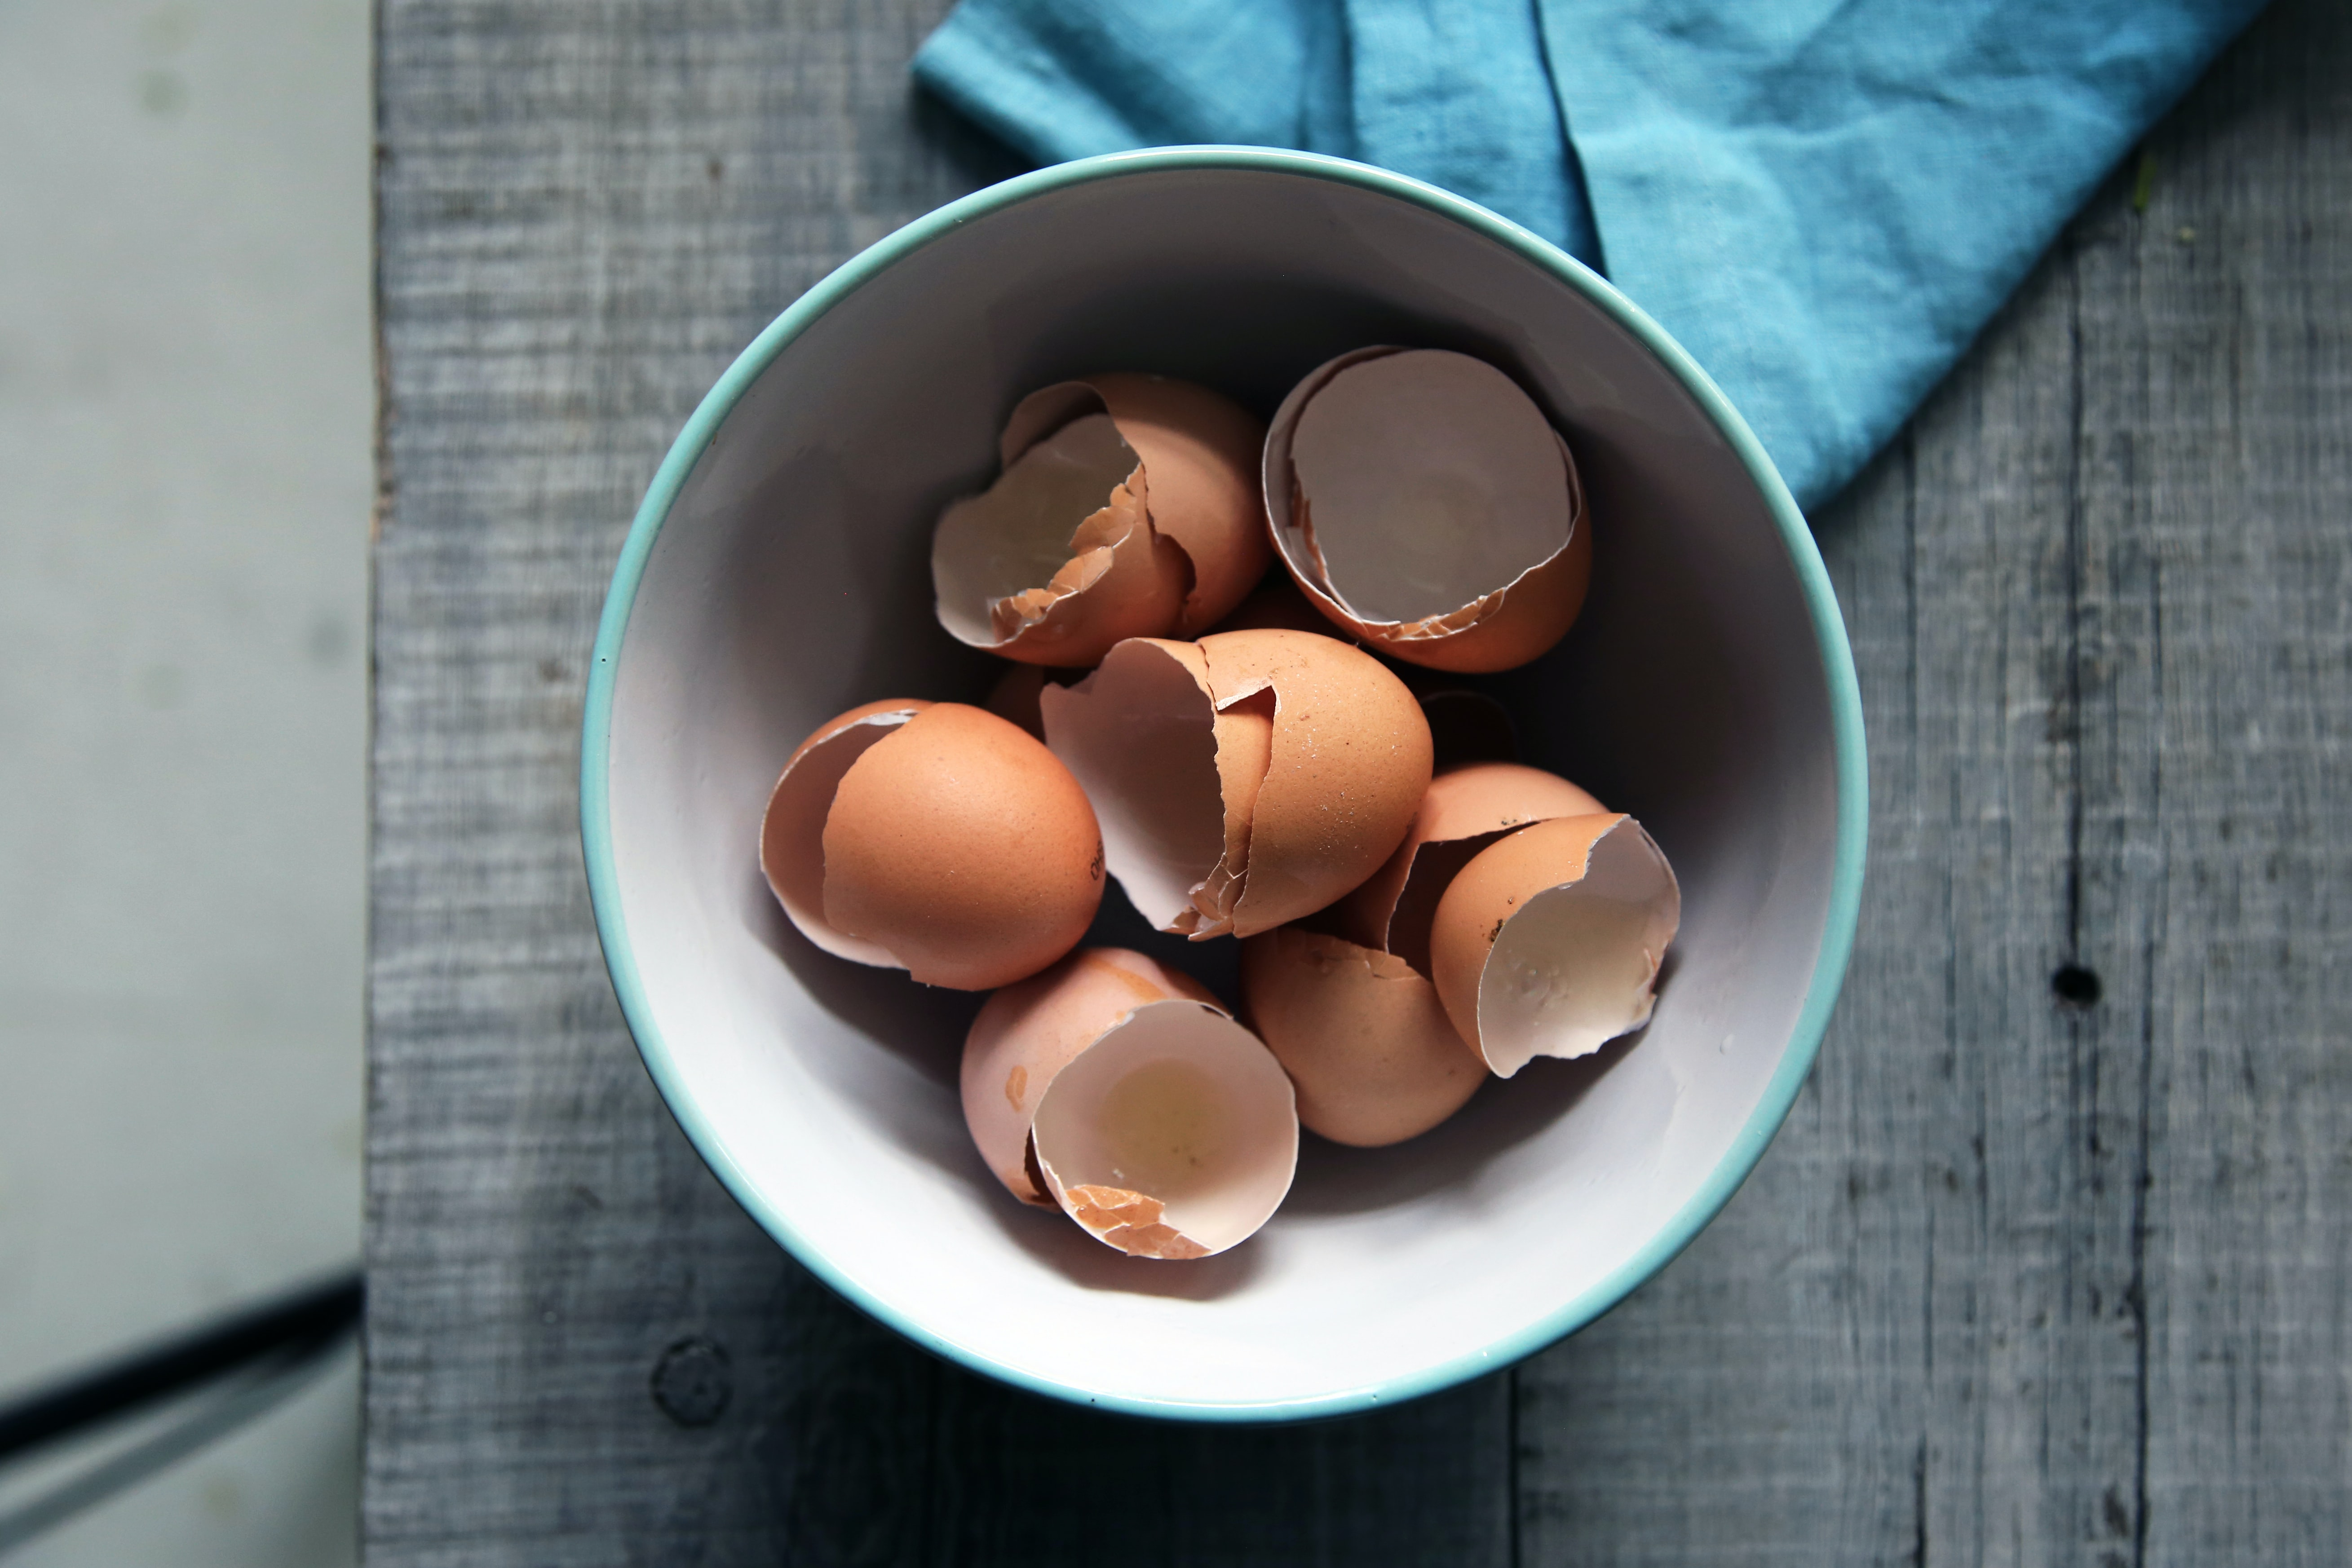 A bowl full of cracked eggshells on a wooden table